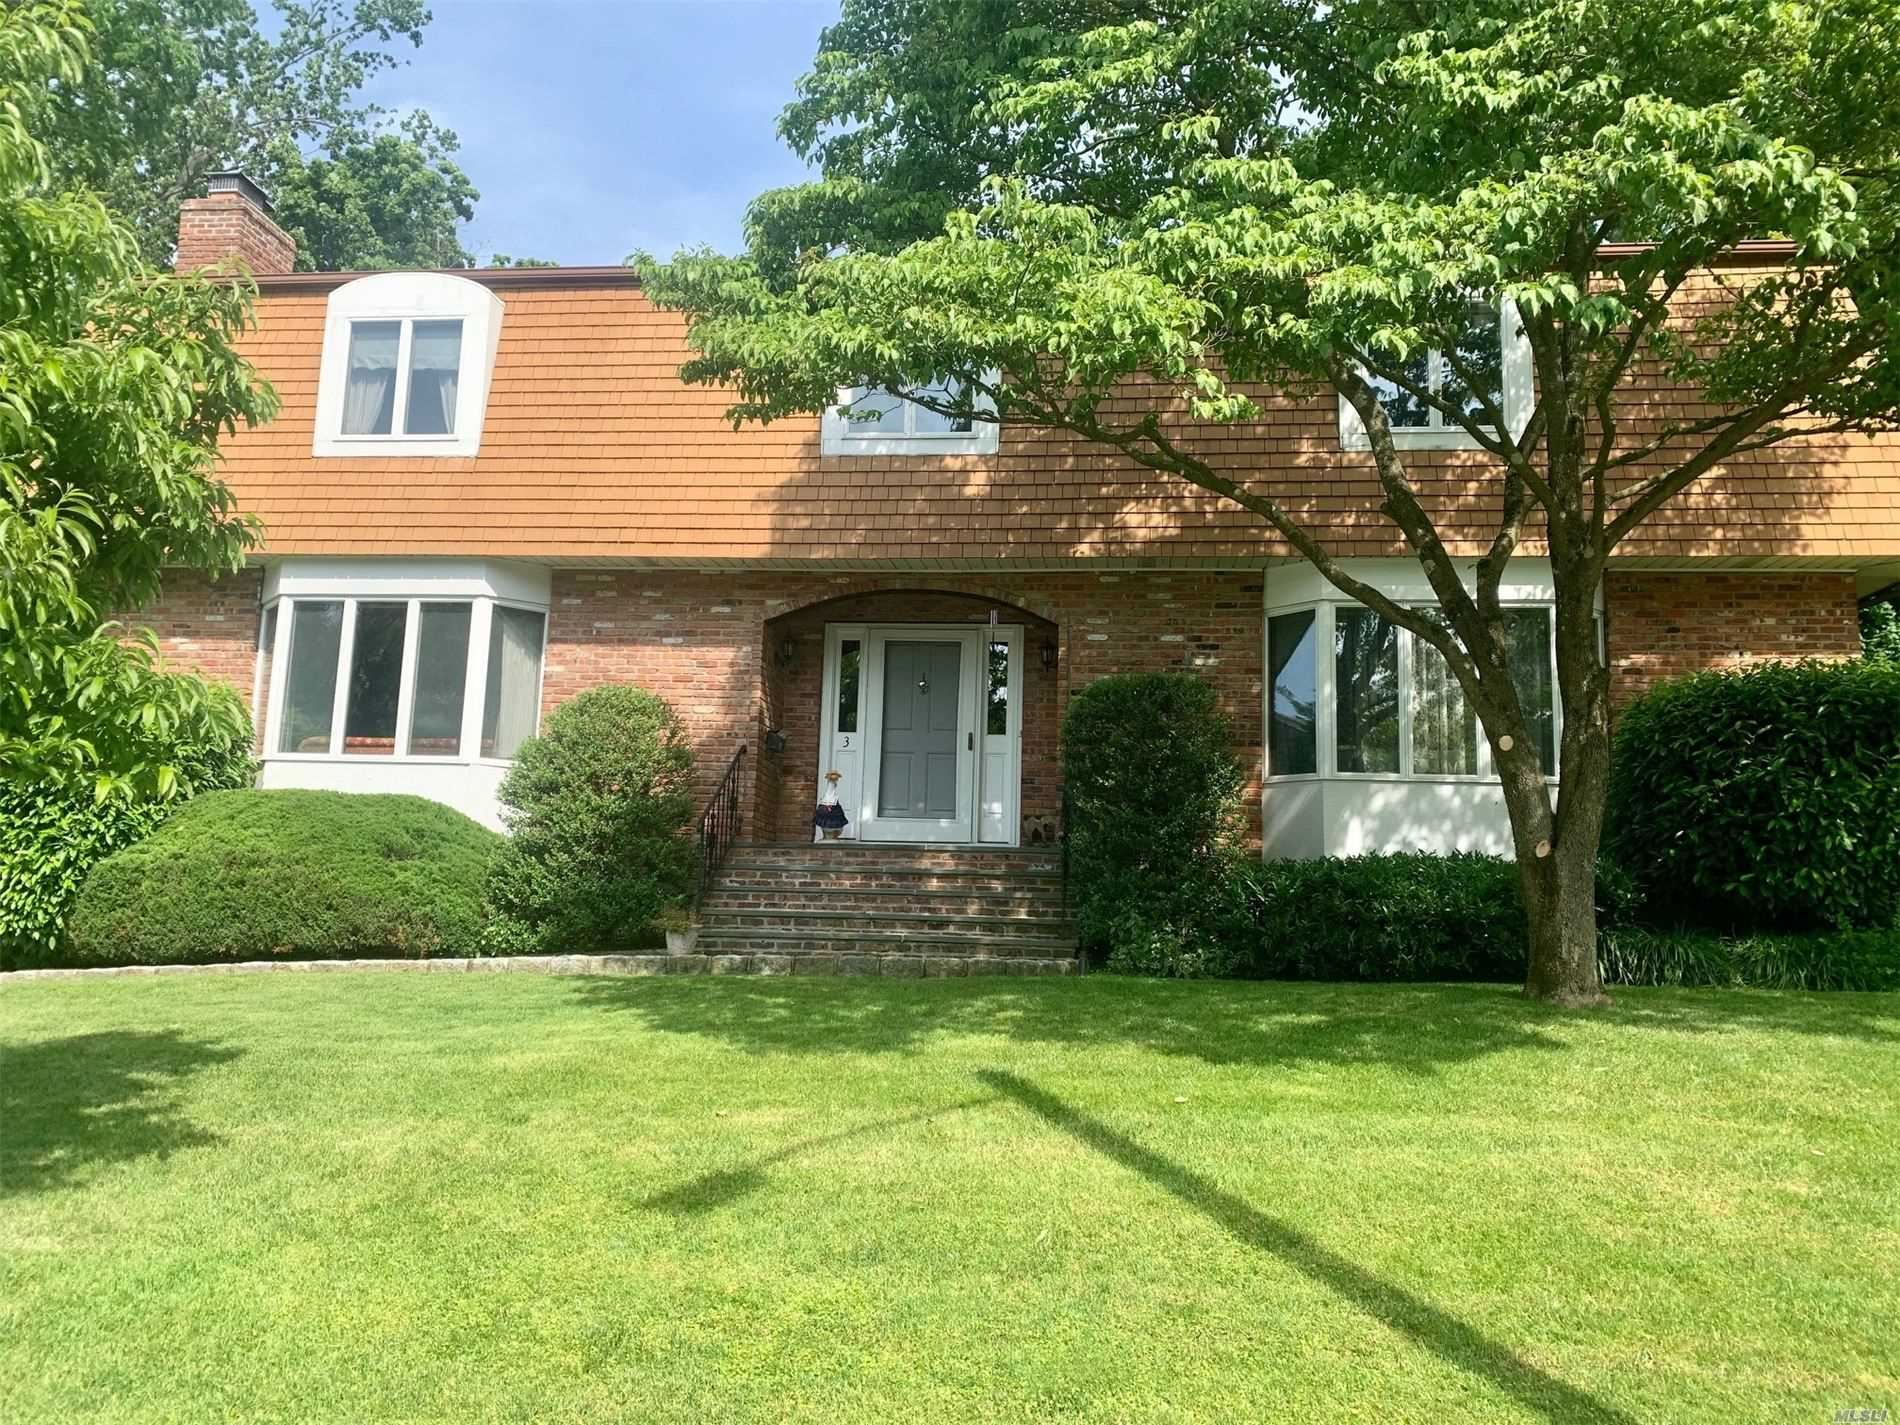 3 Compass Court, Oyster Bay, NY 11771 - MLS#: 3219709